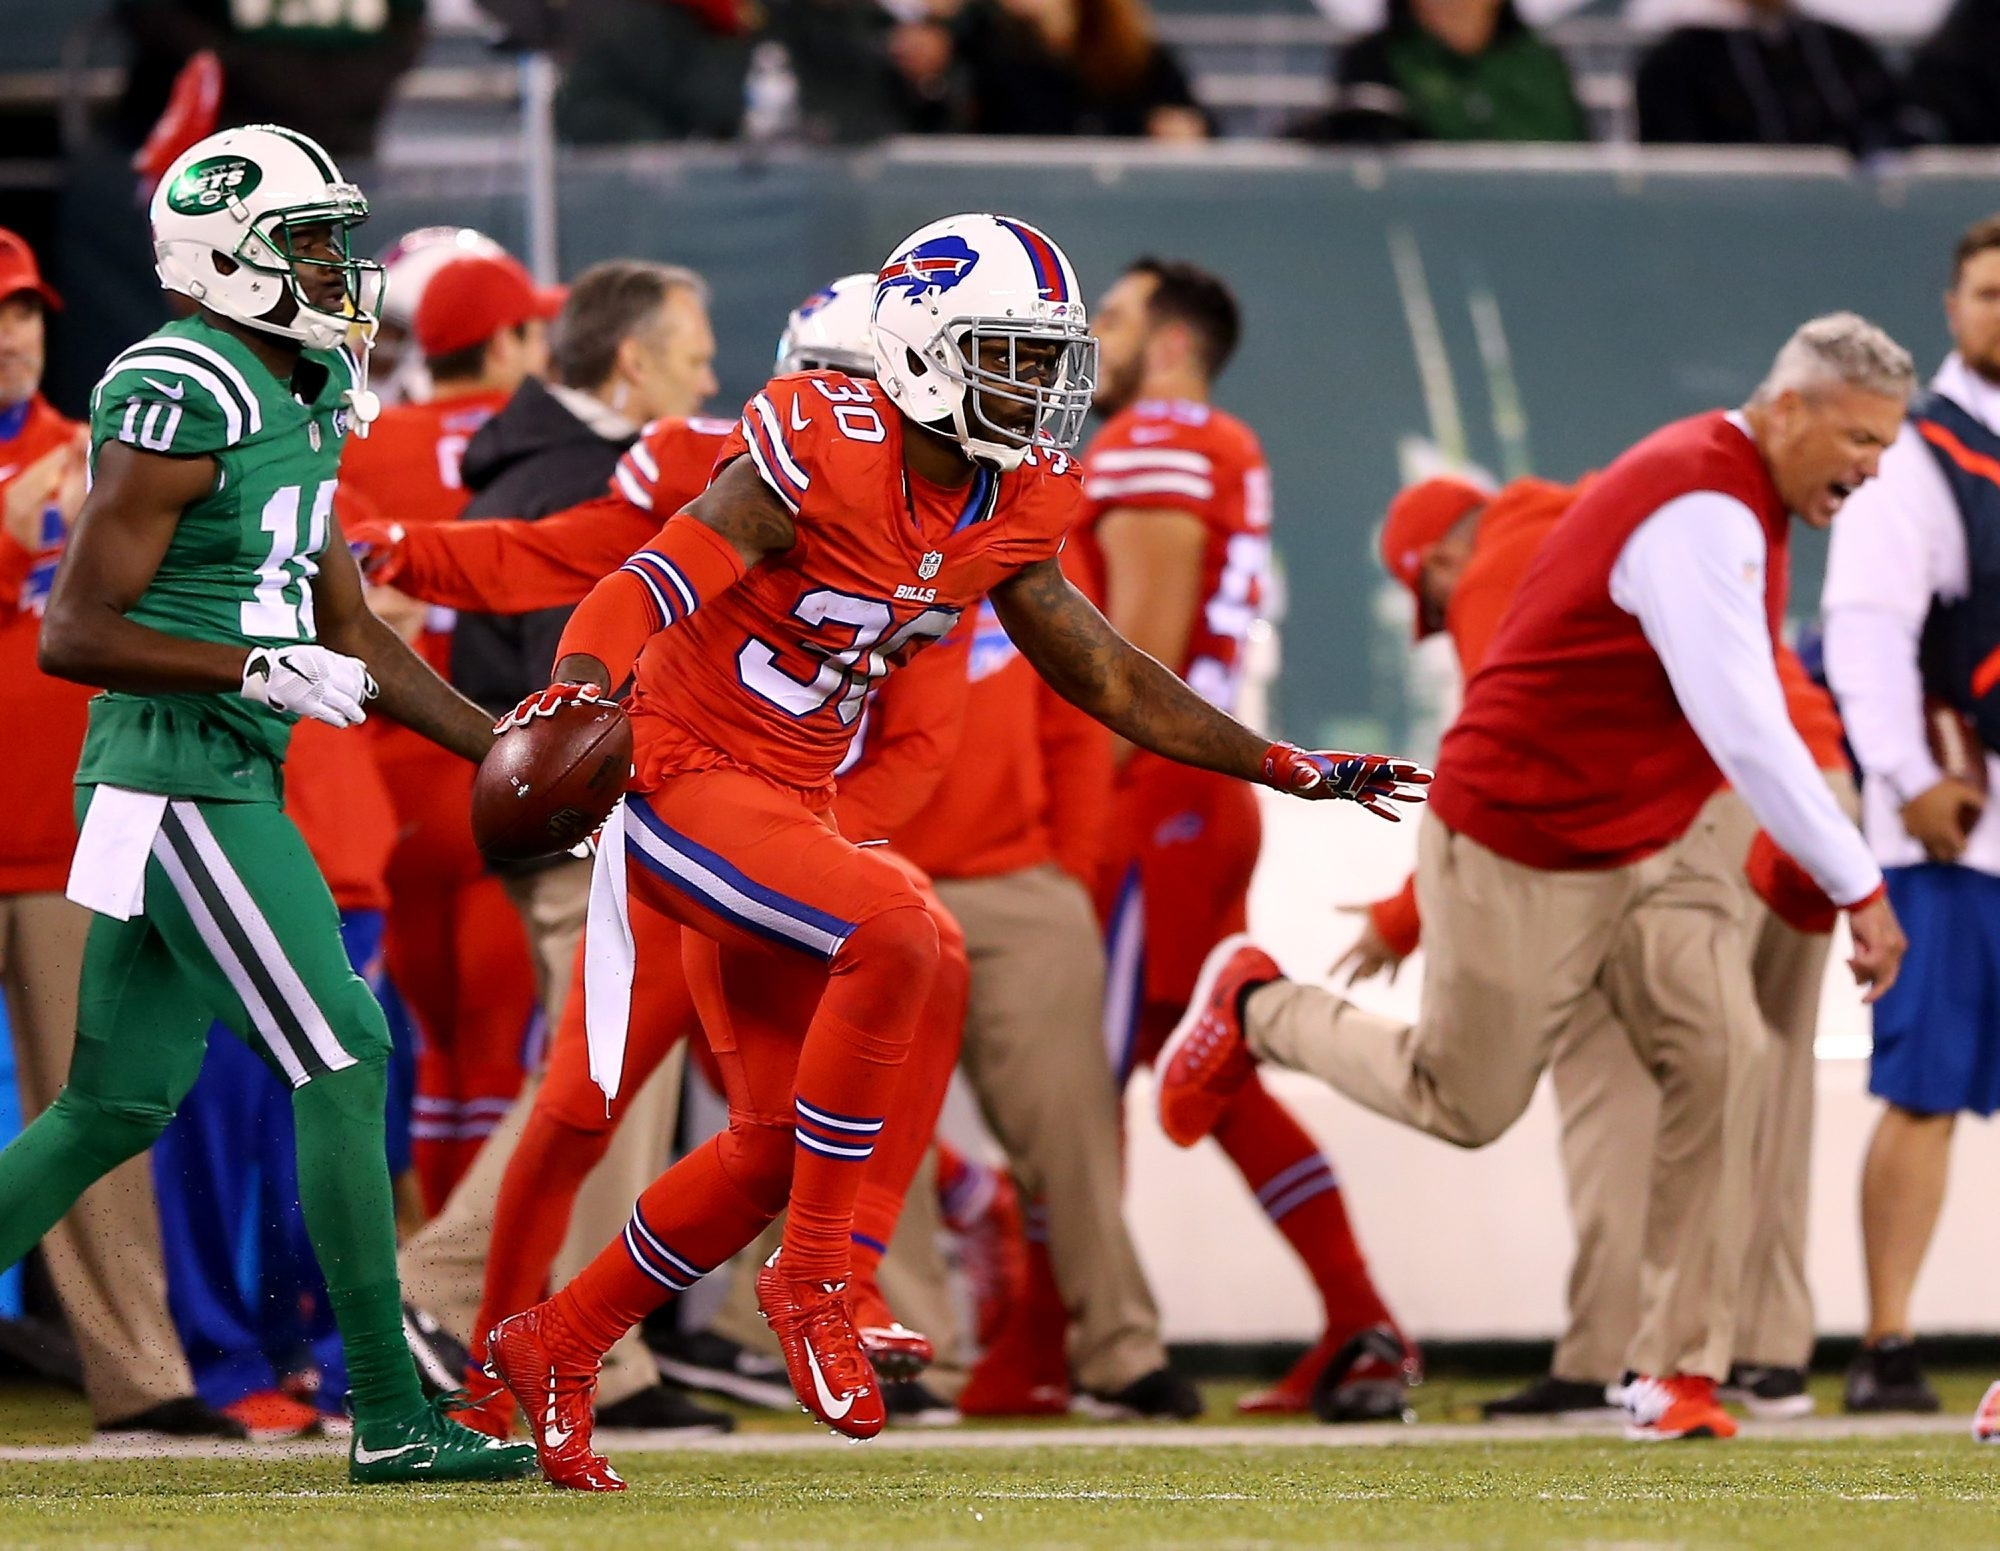 Bills' defensive back Bacarri Rambo (30), shown here in November against the Jets, played hurt during Sunday's against Dallas. He was dealing with a shoulder injury.